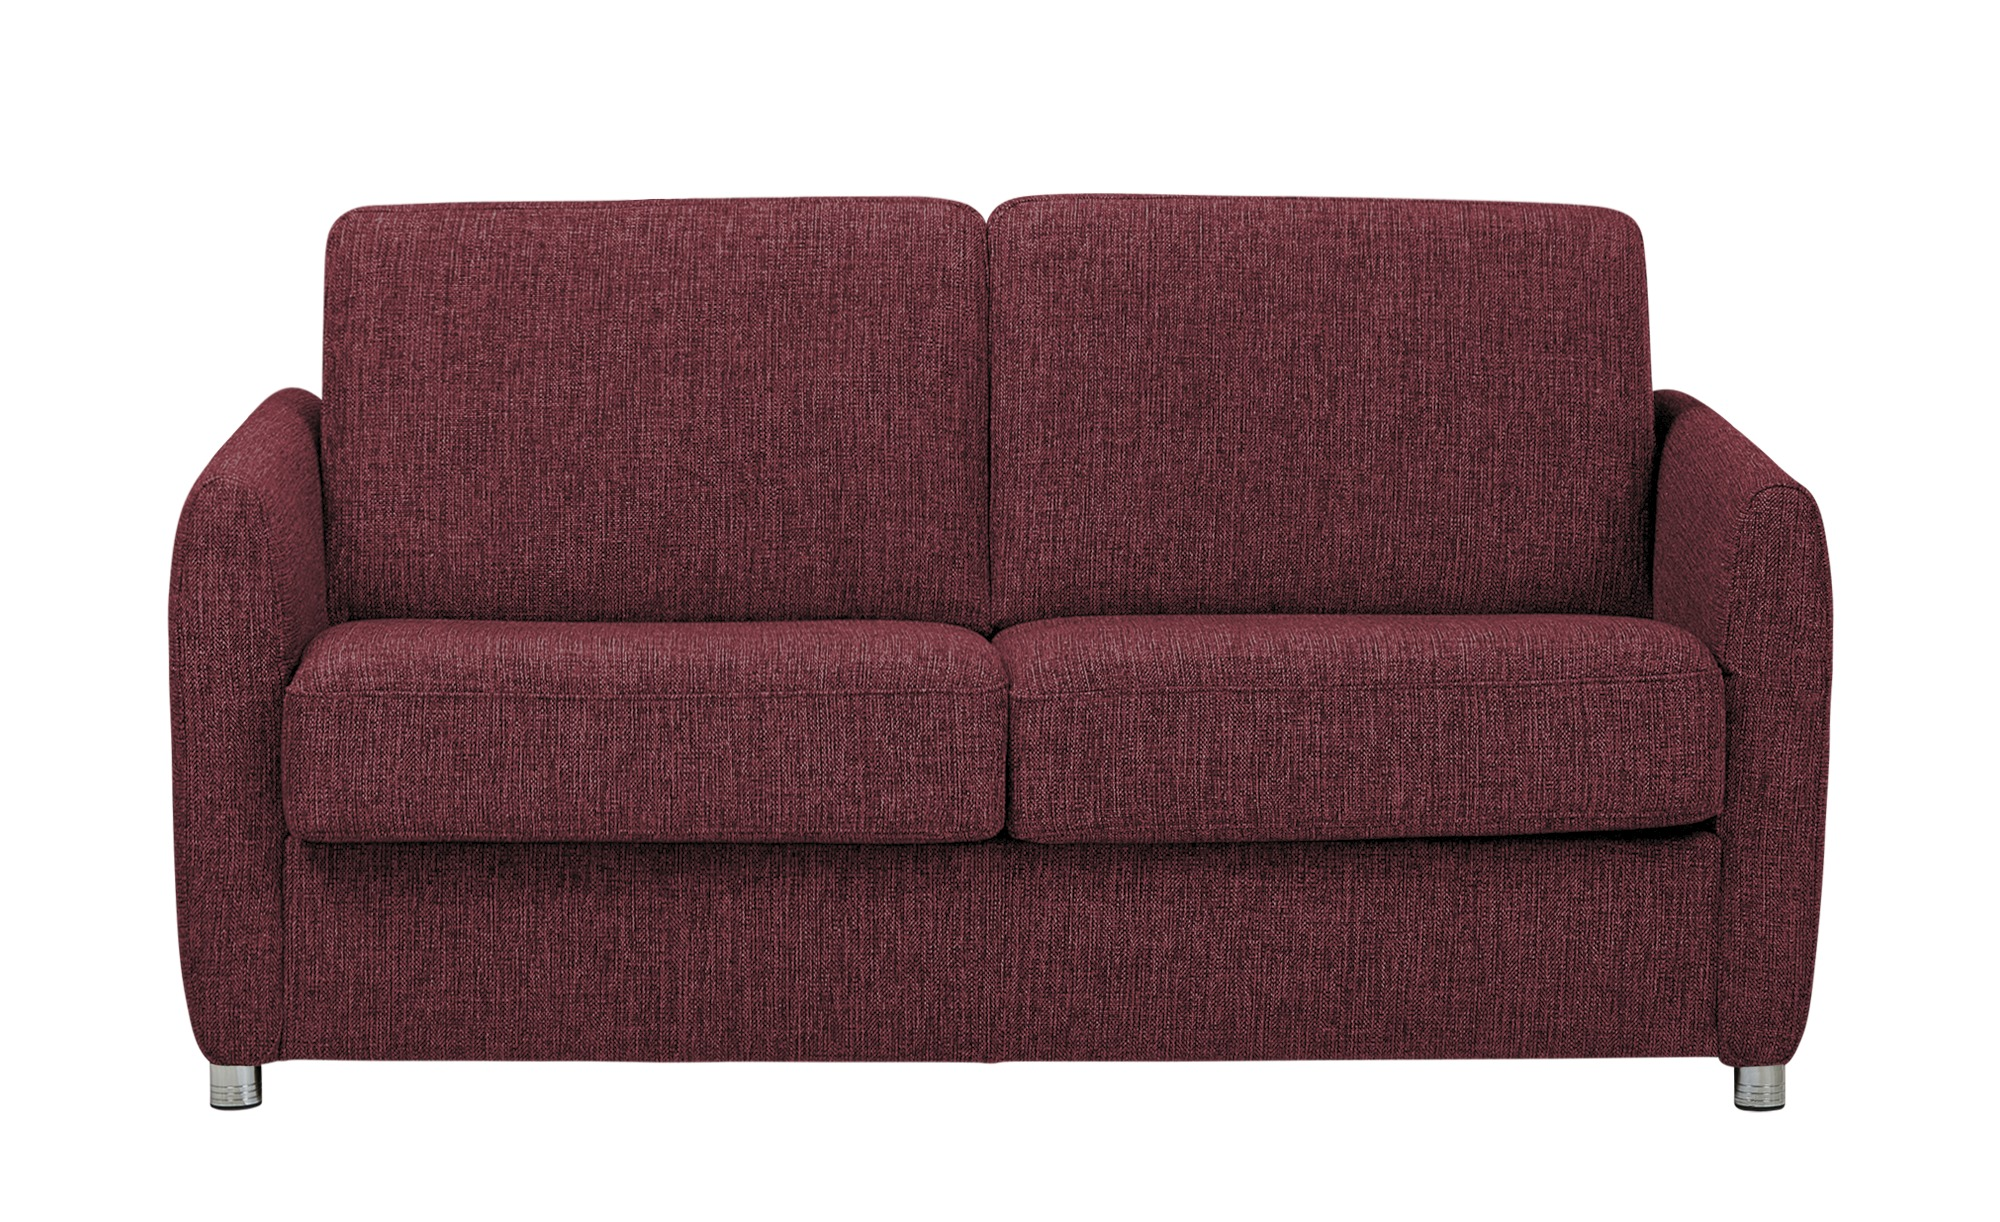 Schlafsofa mit faltbettfunktion betty breite 162 cm h he for Schlafsofa rot